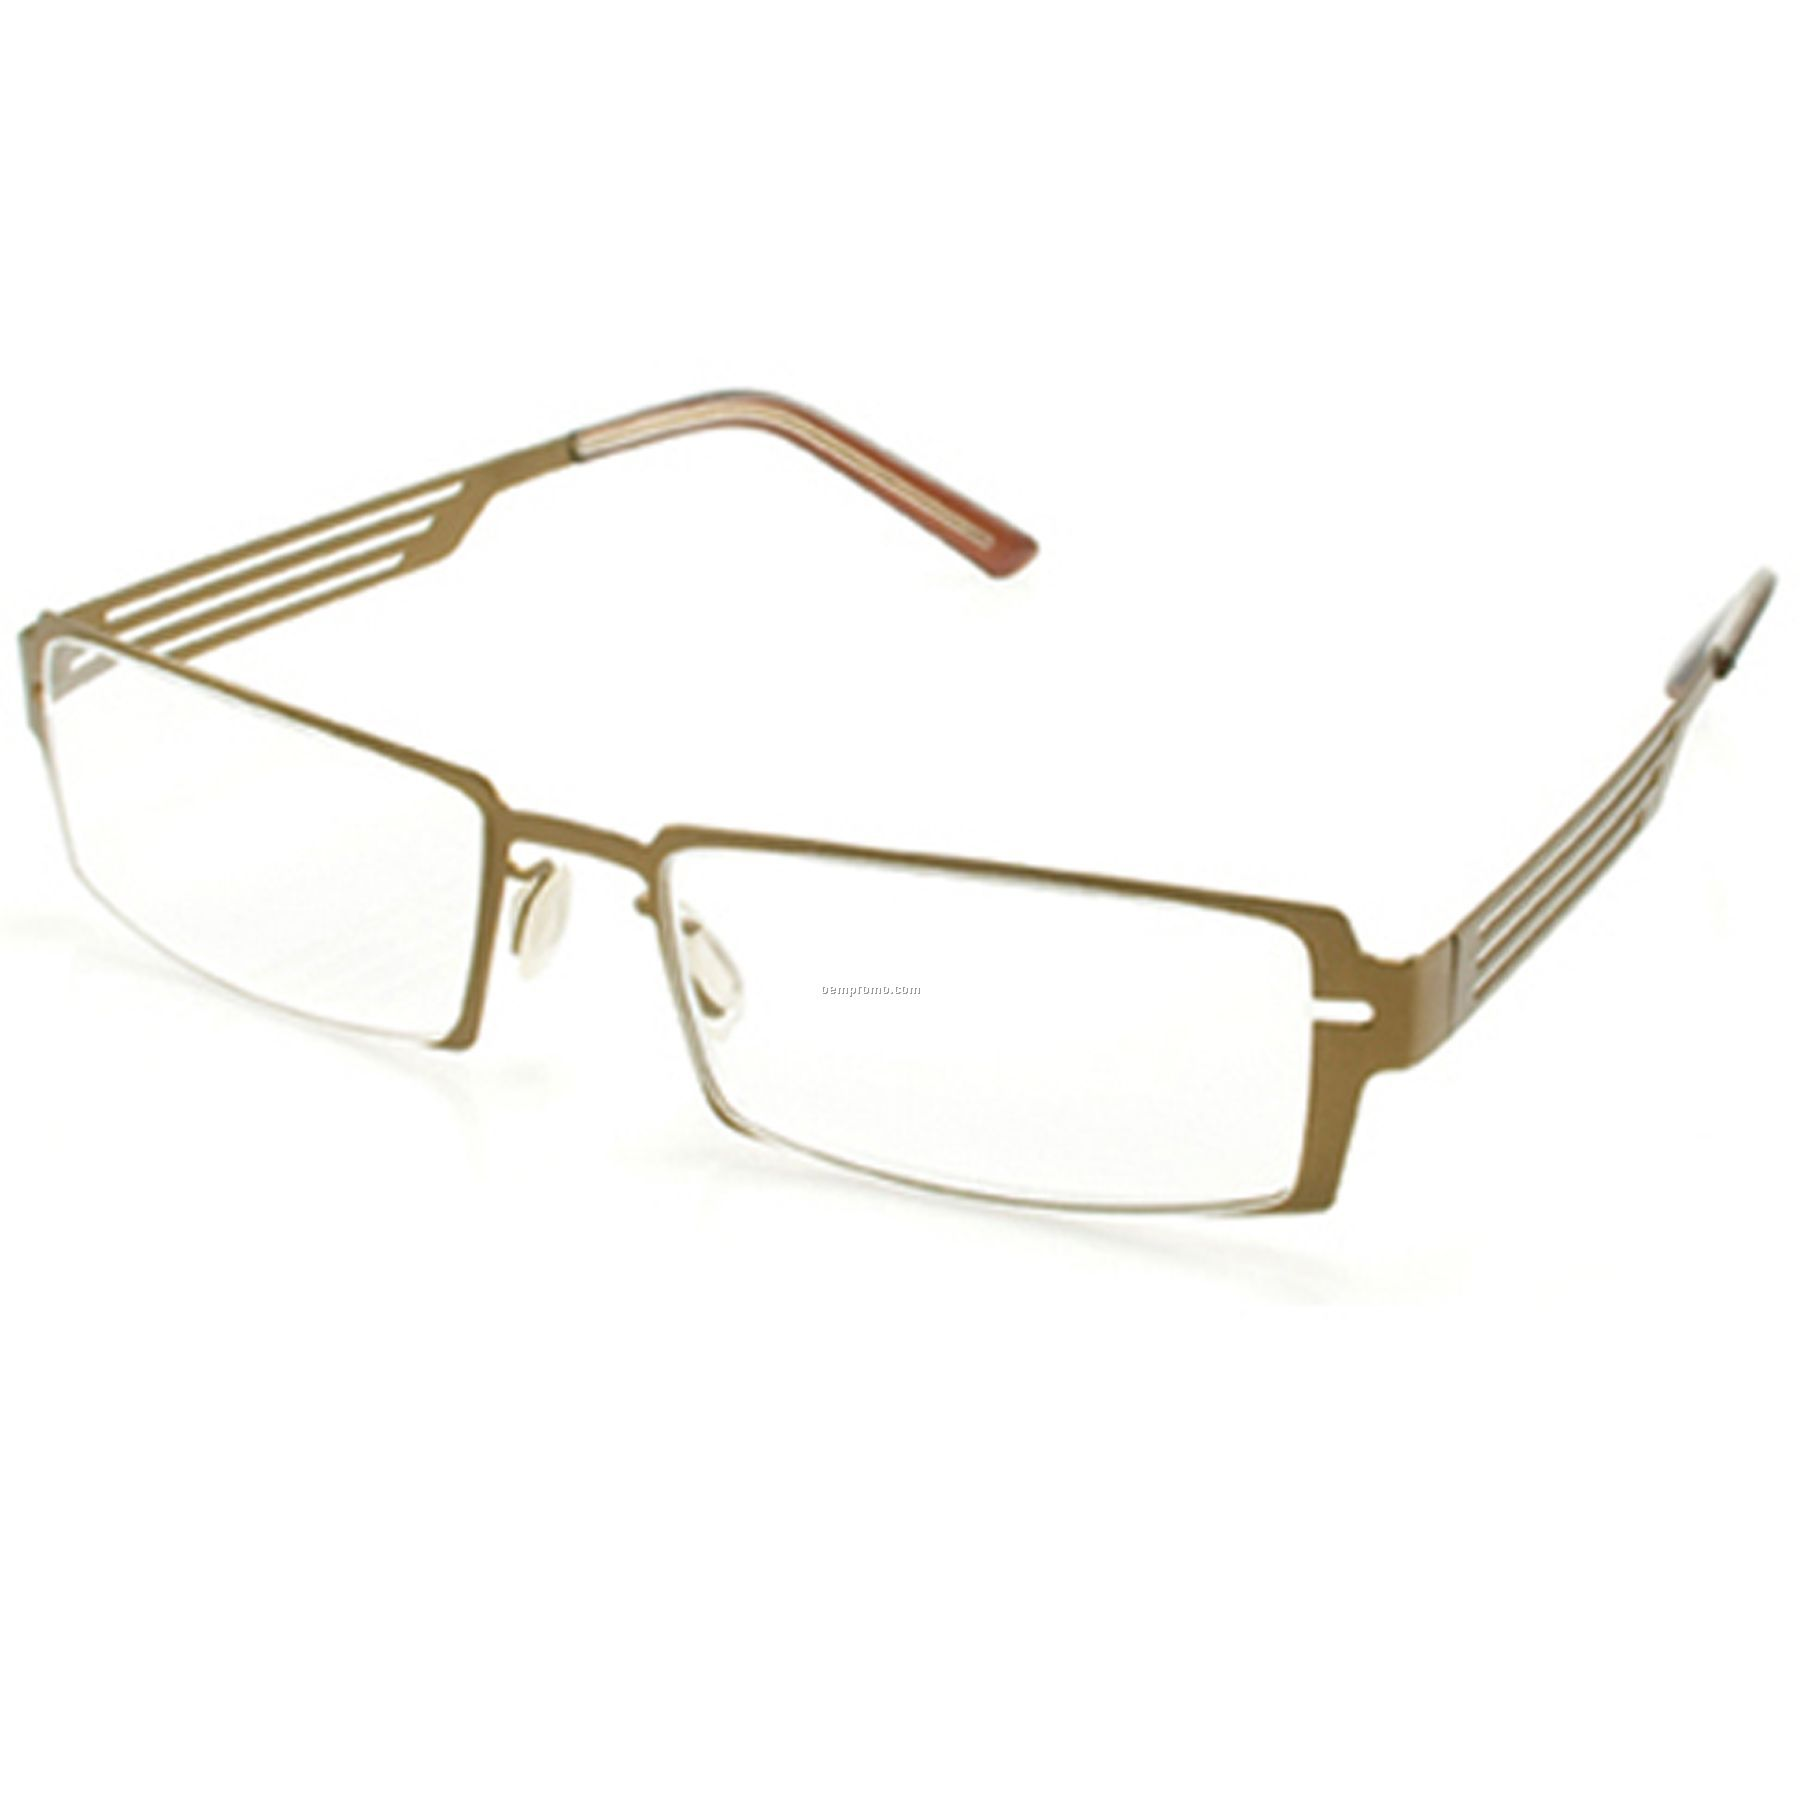 Light Weight Metal Reading Glasses